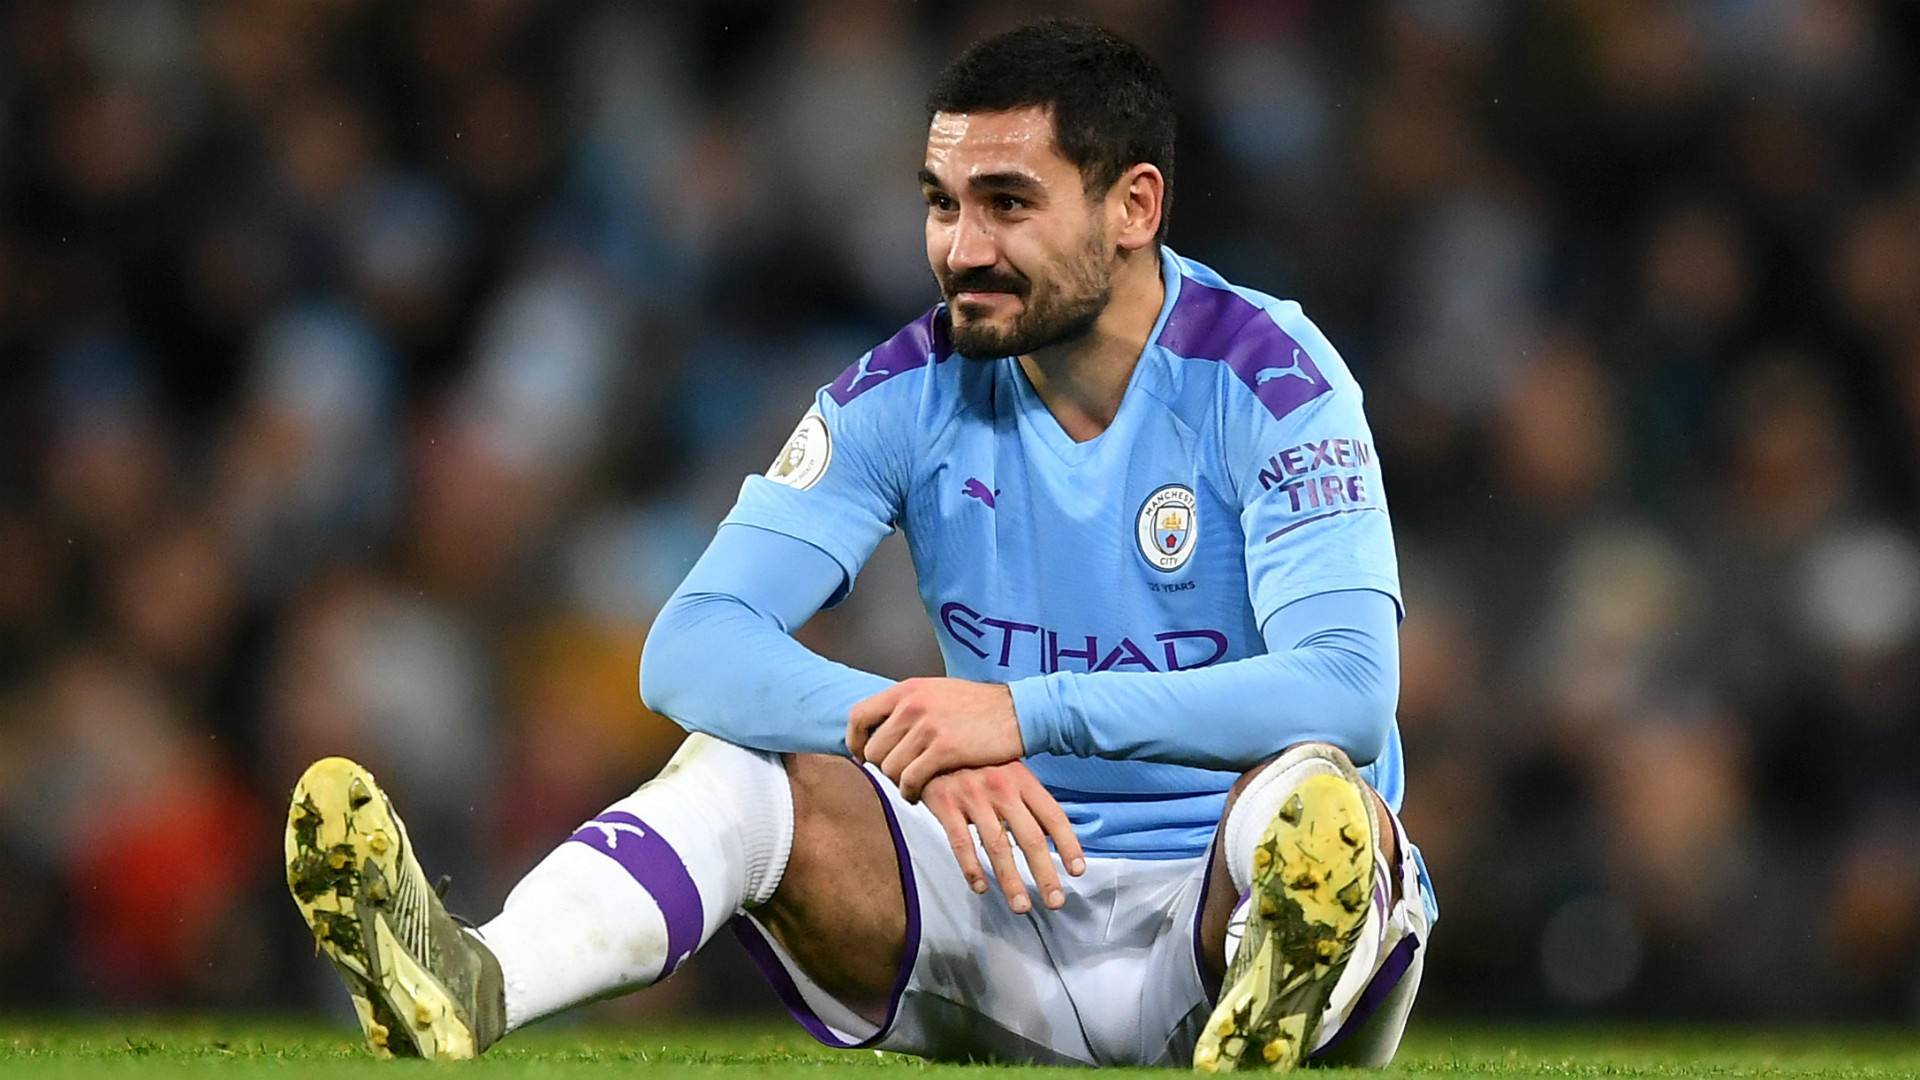 Manchester City midfielder, Ilkay Gundogan tests positive for coronavirus ahead of Premier League opener